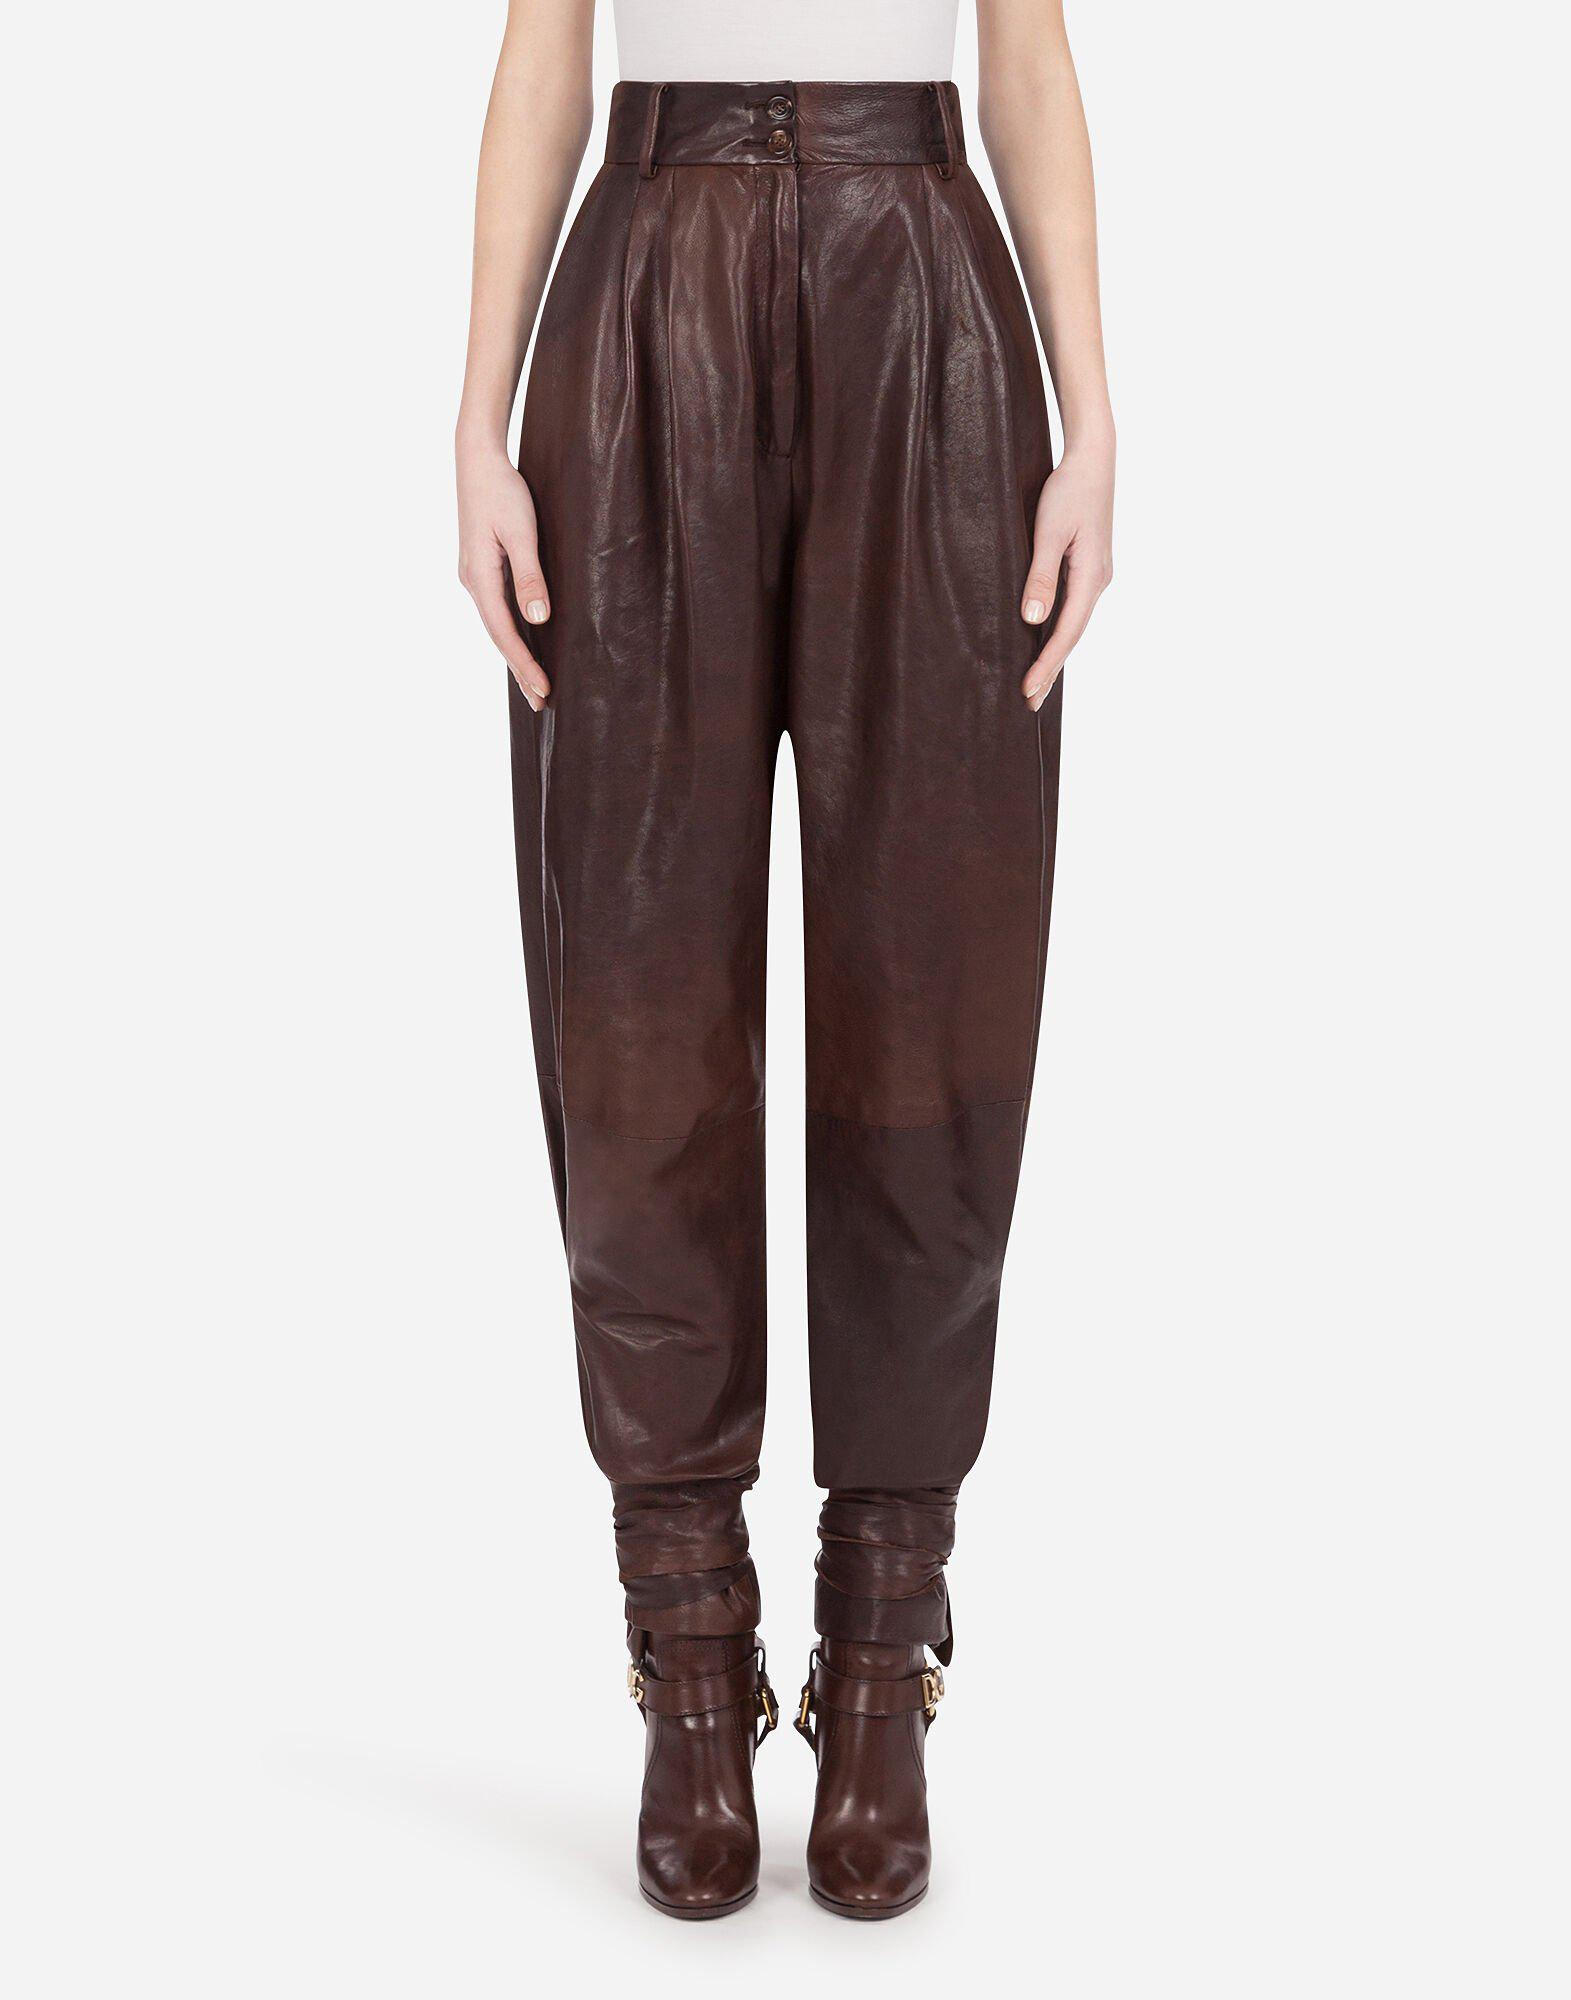 Pants in nappa leather with ties